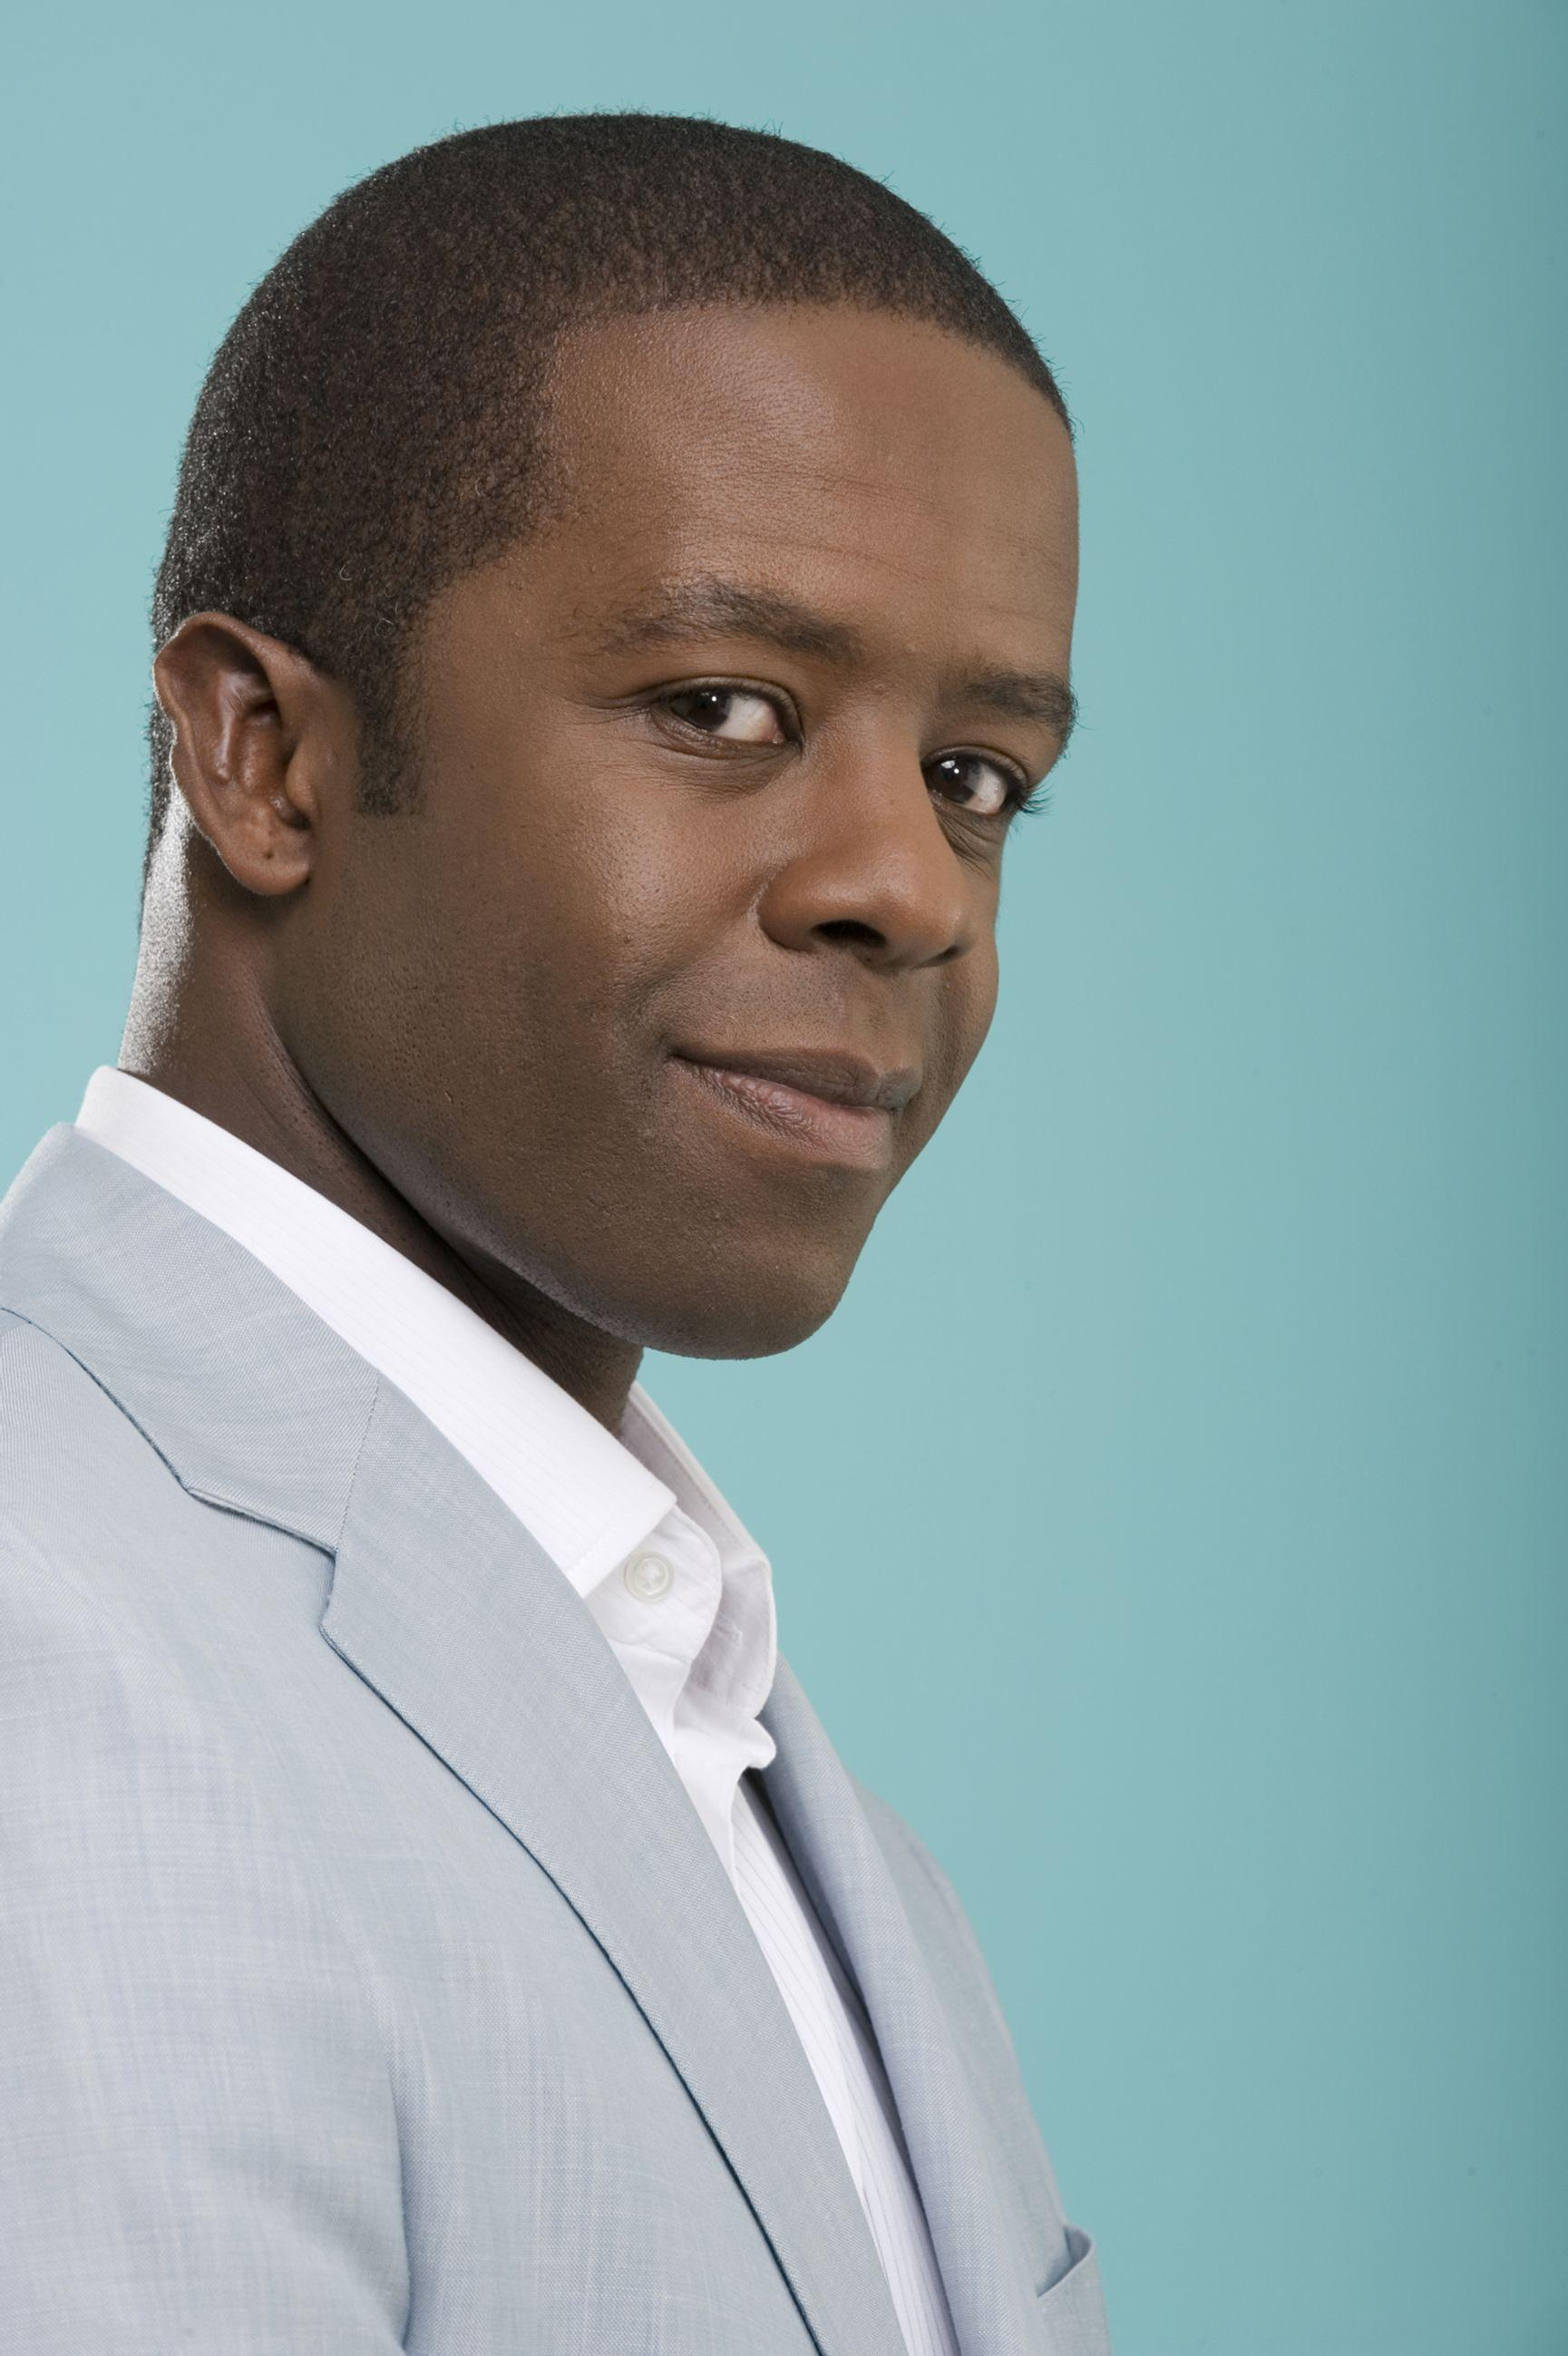 adrian lester net worthadrian lester hamlet youtube, adrian lester to be or not to be, adrian lester hamlet, adrian lester, adrian lester imdb, adrian lester in othello, адриан лестер, adrian lester hustle, adrian lester wife, adrian lester actor, adrian lester undercover, adrian lester net worth, adrian lester red velvet, adrian lester movies and tv shows, adrian lester james bond, adrian lester twitter, adrian lester and his wife, adrian lester theatre, adrian lester family, adrian lester agent